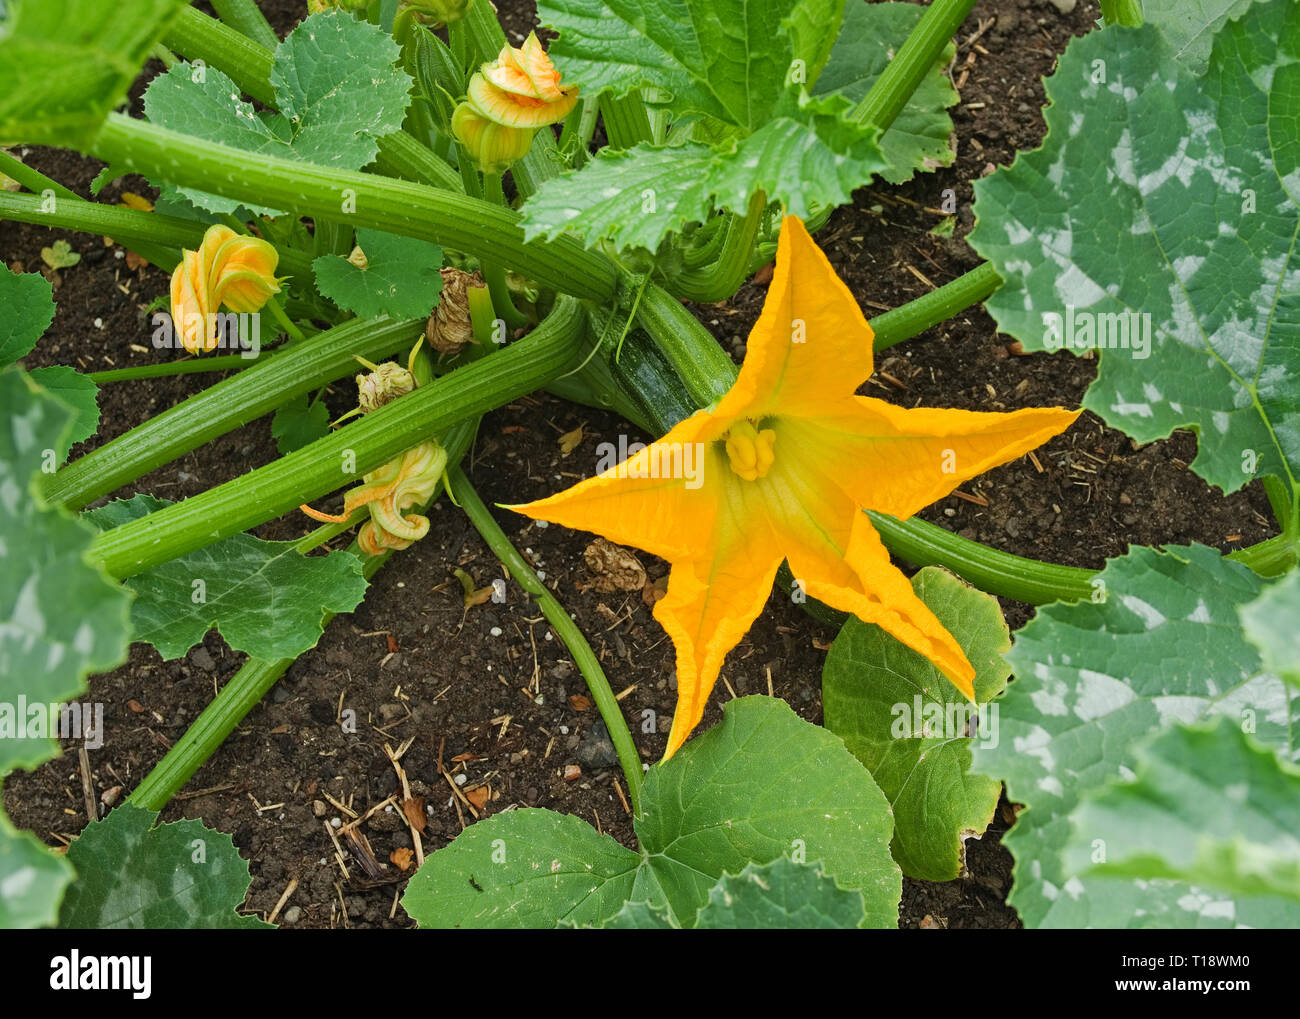 Close-up of yellow courgette flowers on courgette plants variety F1 Defender growing in vegetable patch in English garden, summer UK Stock Photo